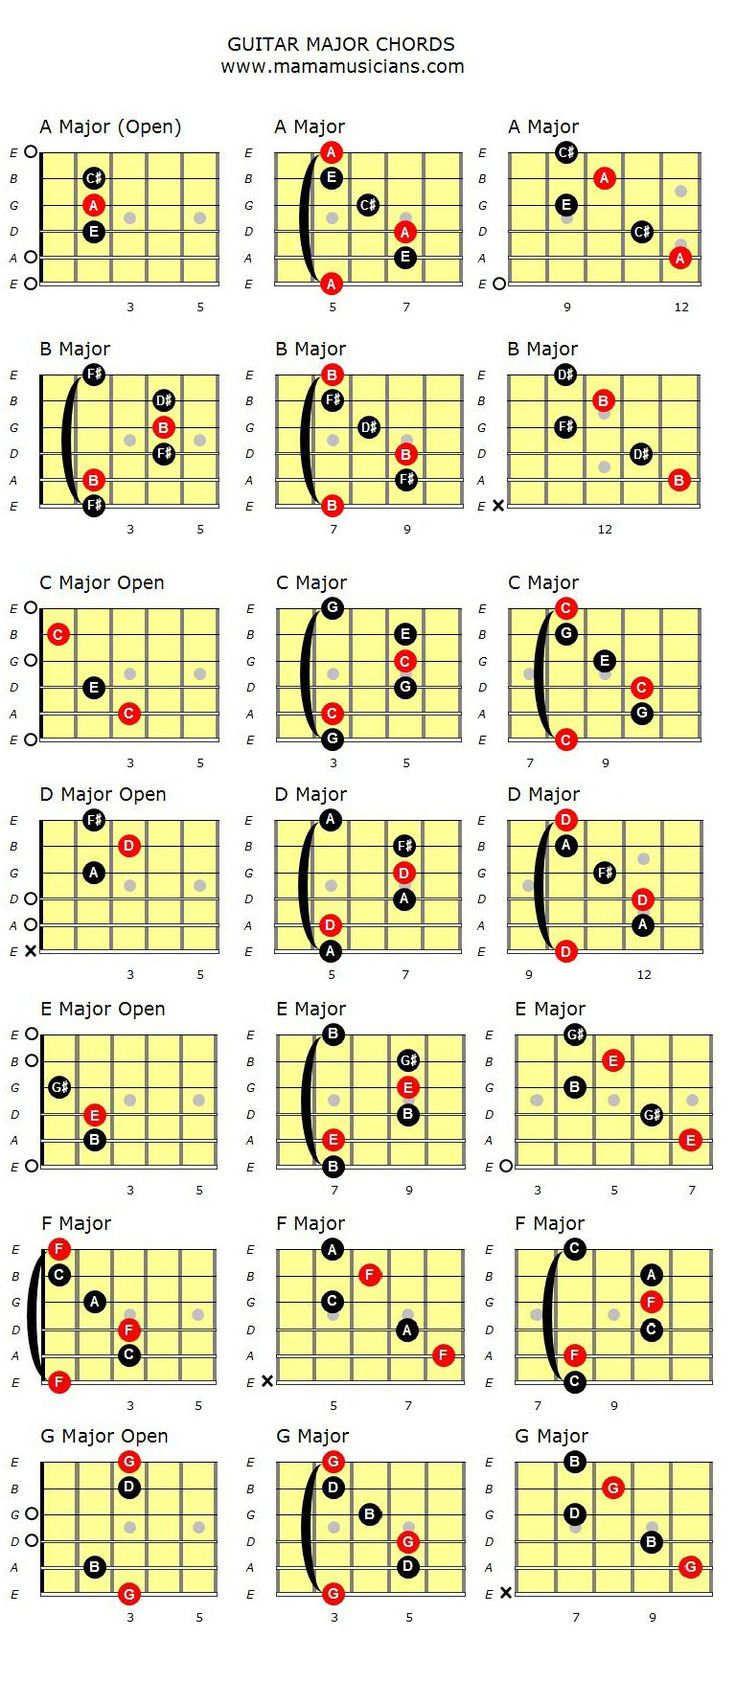 How to Rapidly Learn to Play the Acoustic Guitar Yourself